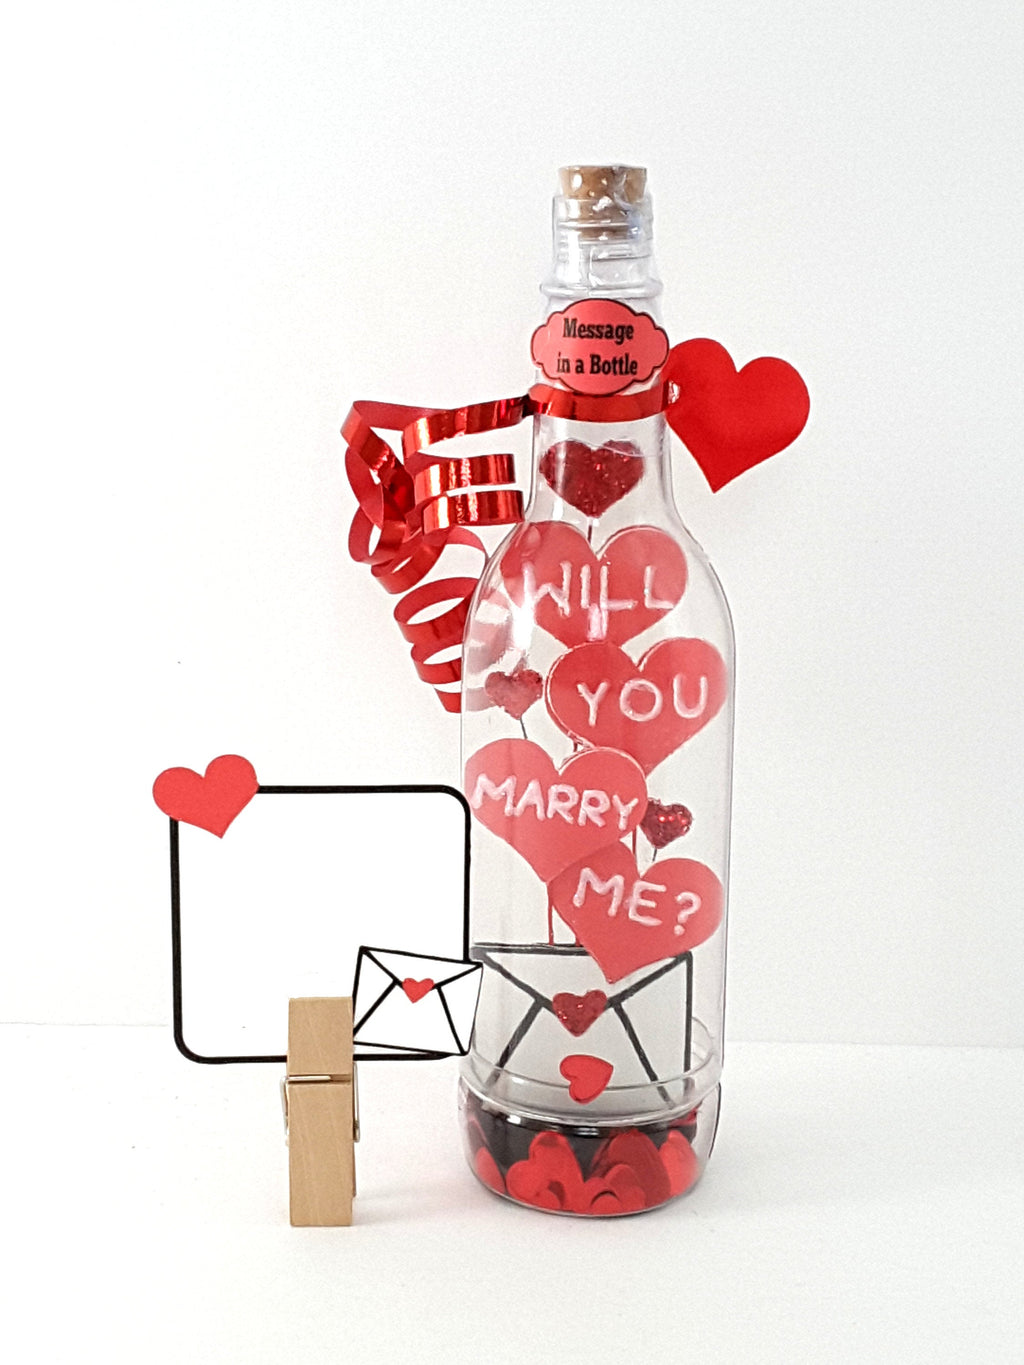 Will You Marry Me? Message in a Bottle, Romantic Marriage Proposal, Marriage Proposal Keepsake, Valentine Proposal, Valentine's Card - TheLastWordBish.com